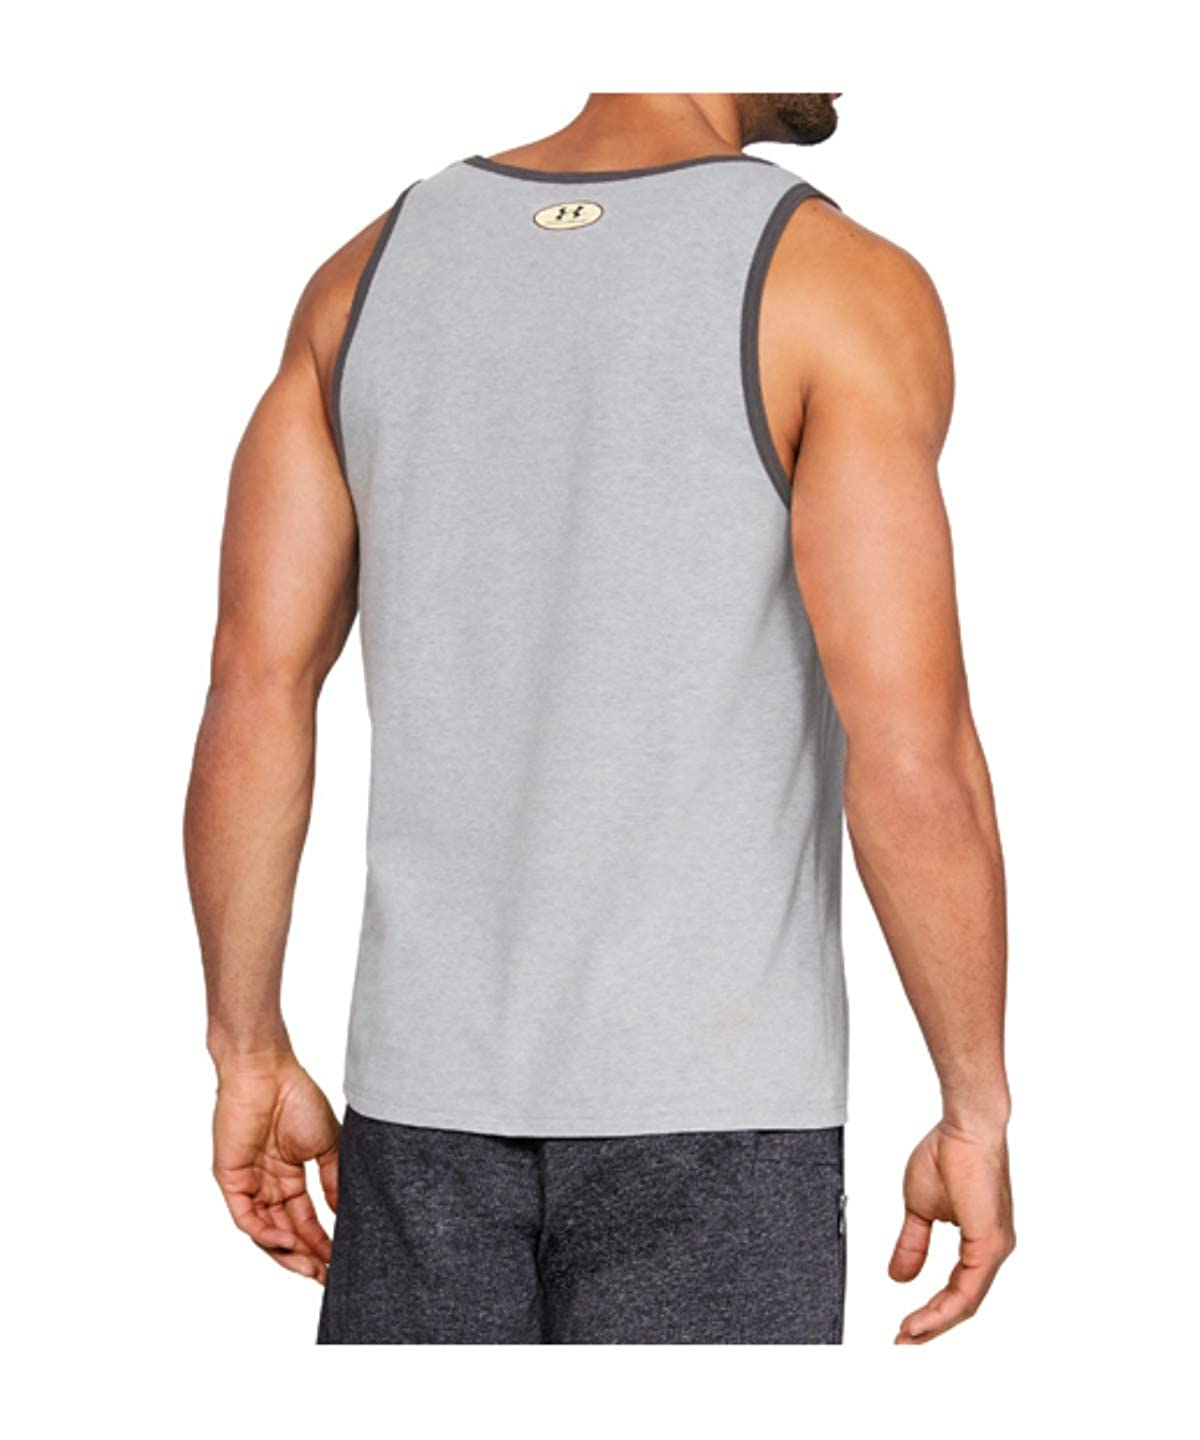 51a1713f83c23 Amazon.com  Under Armour Men s UA x Project Rock World Champ Sleeveless  Tank Top Shirt  Clothing